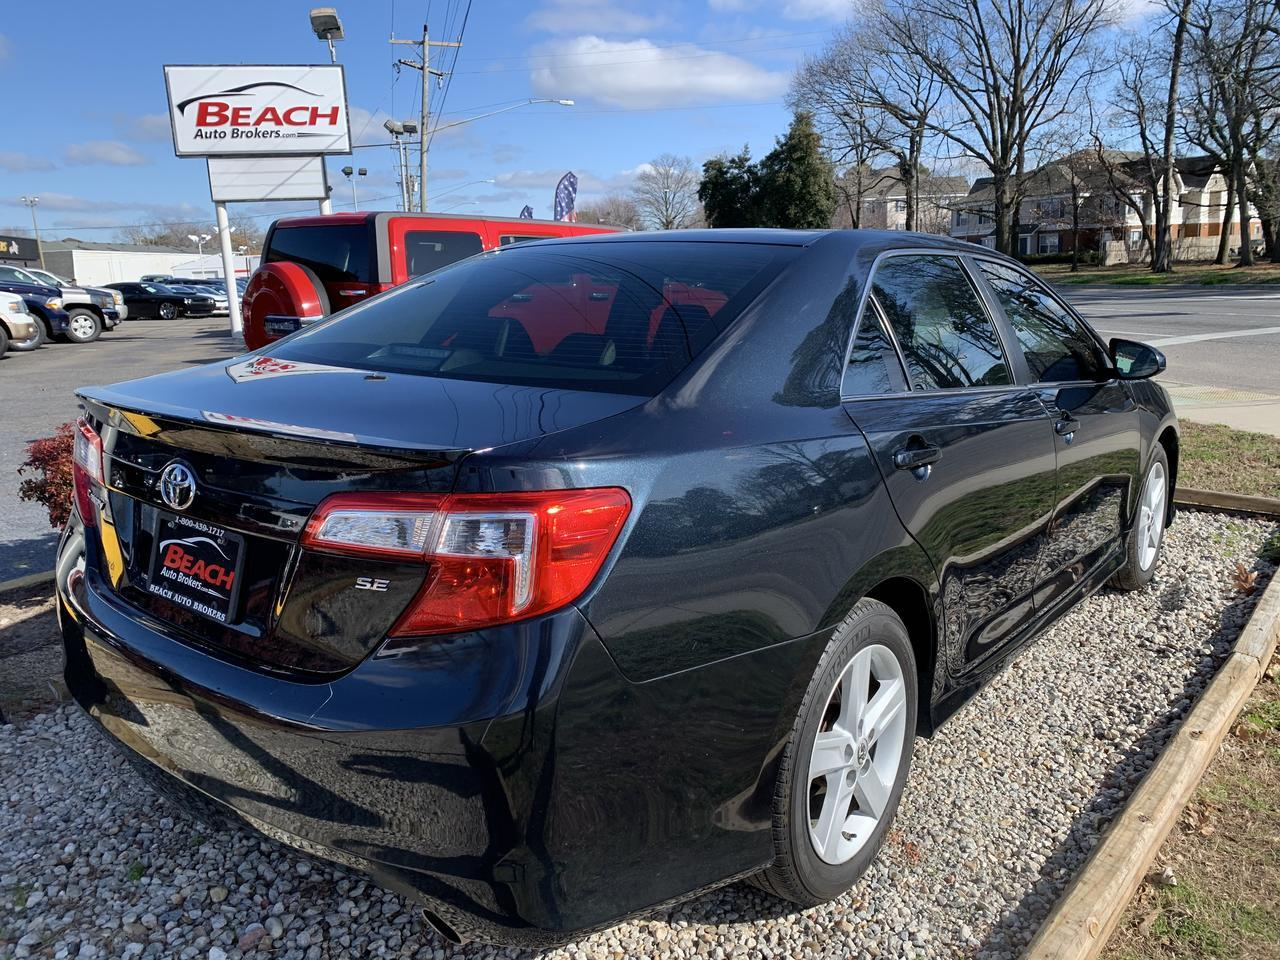 2013 TOYOTA CAMRY SE, WARRANTY, BACKUP CAMERA, PARKING SENSORS, SAT RADIO, BLUETOOTH, LOW MILES, CLEAN CARFAX! Norfolk VA